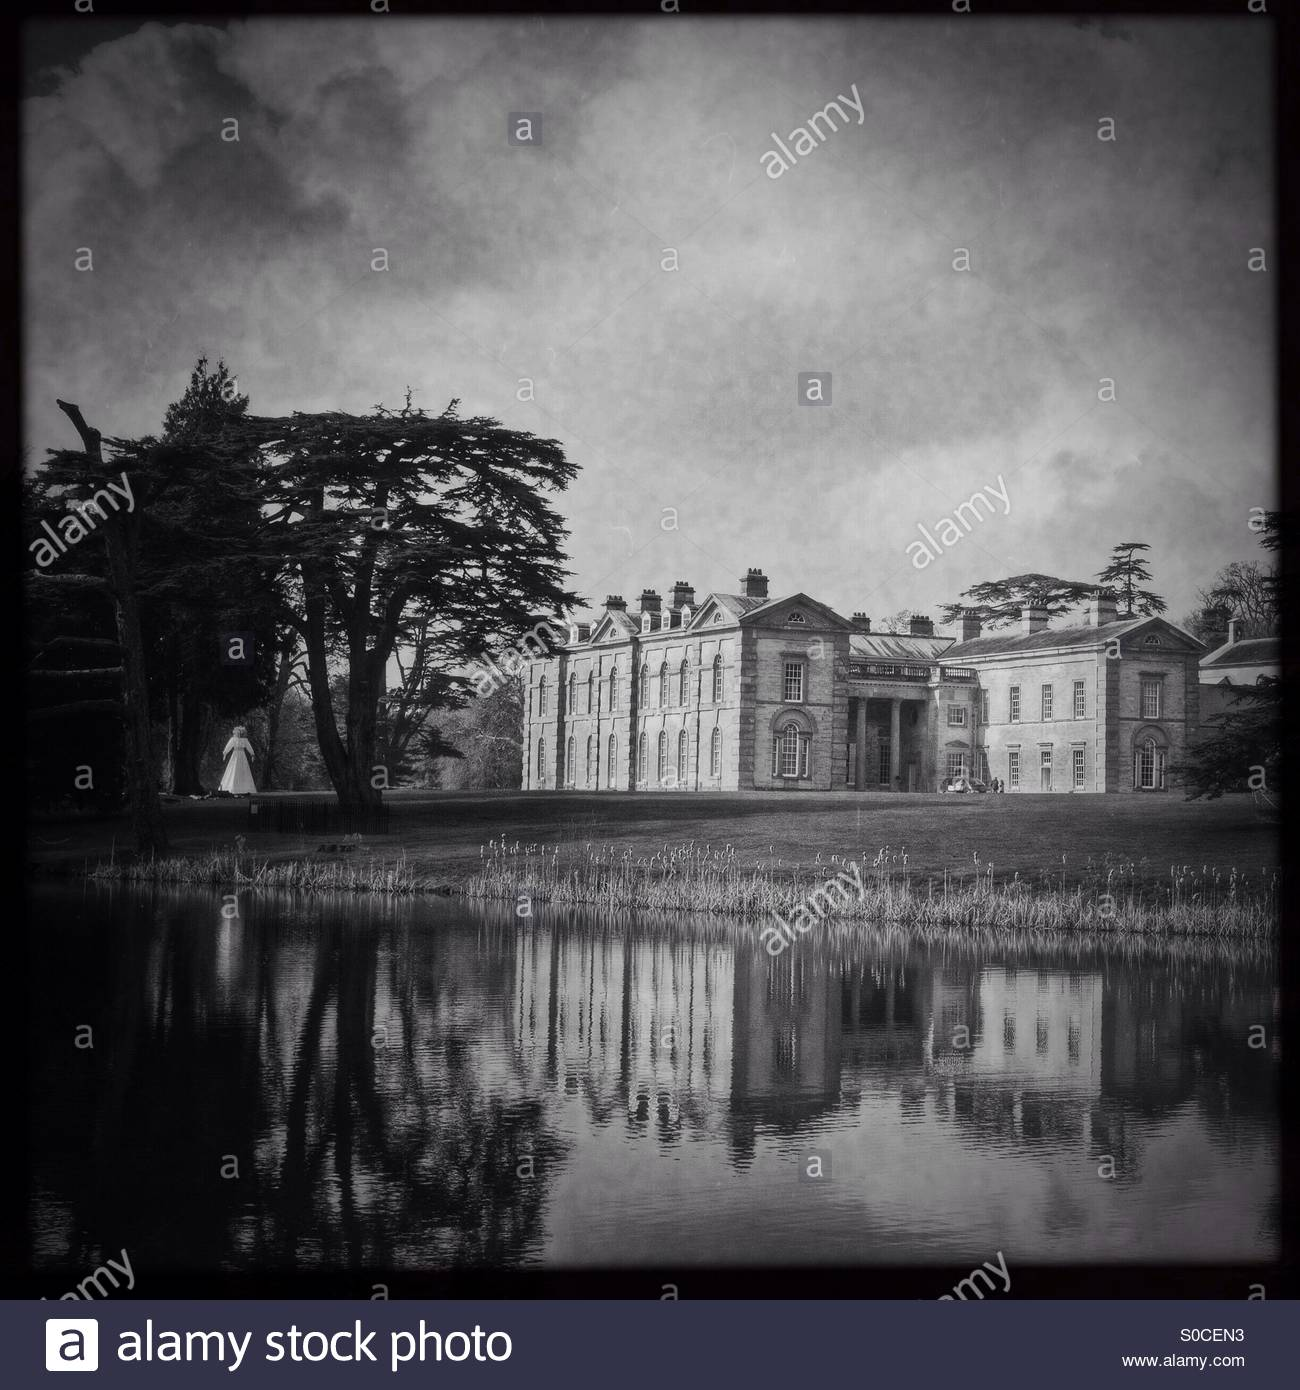 Compton Verney House, a monochrome view via Hipstamatic - Stock Image